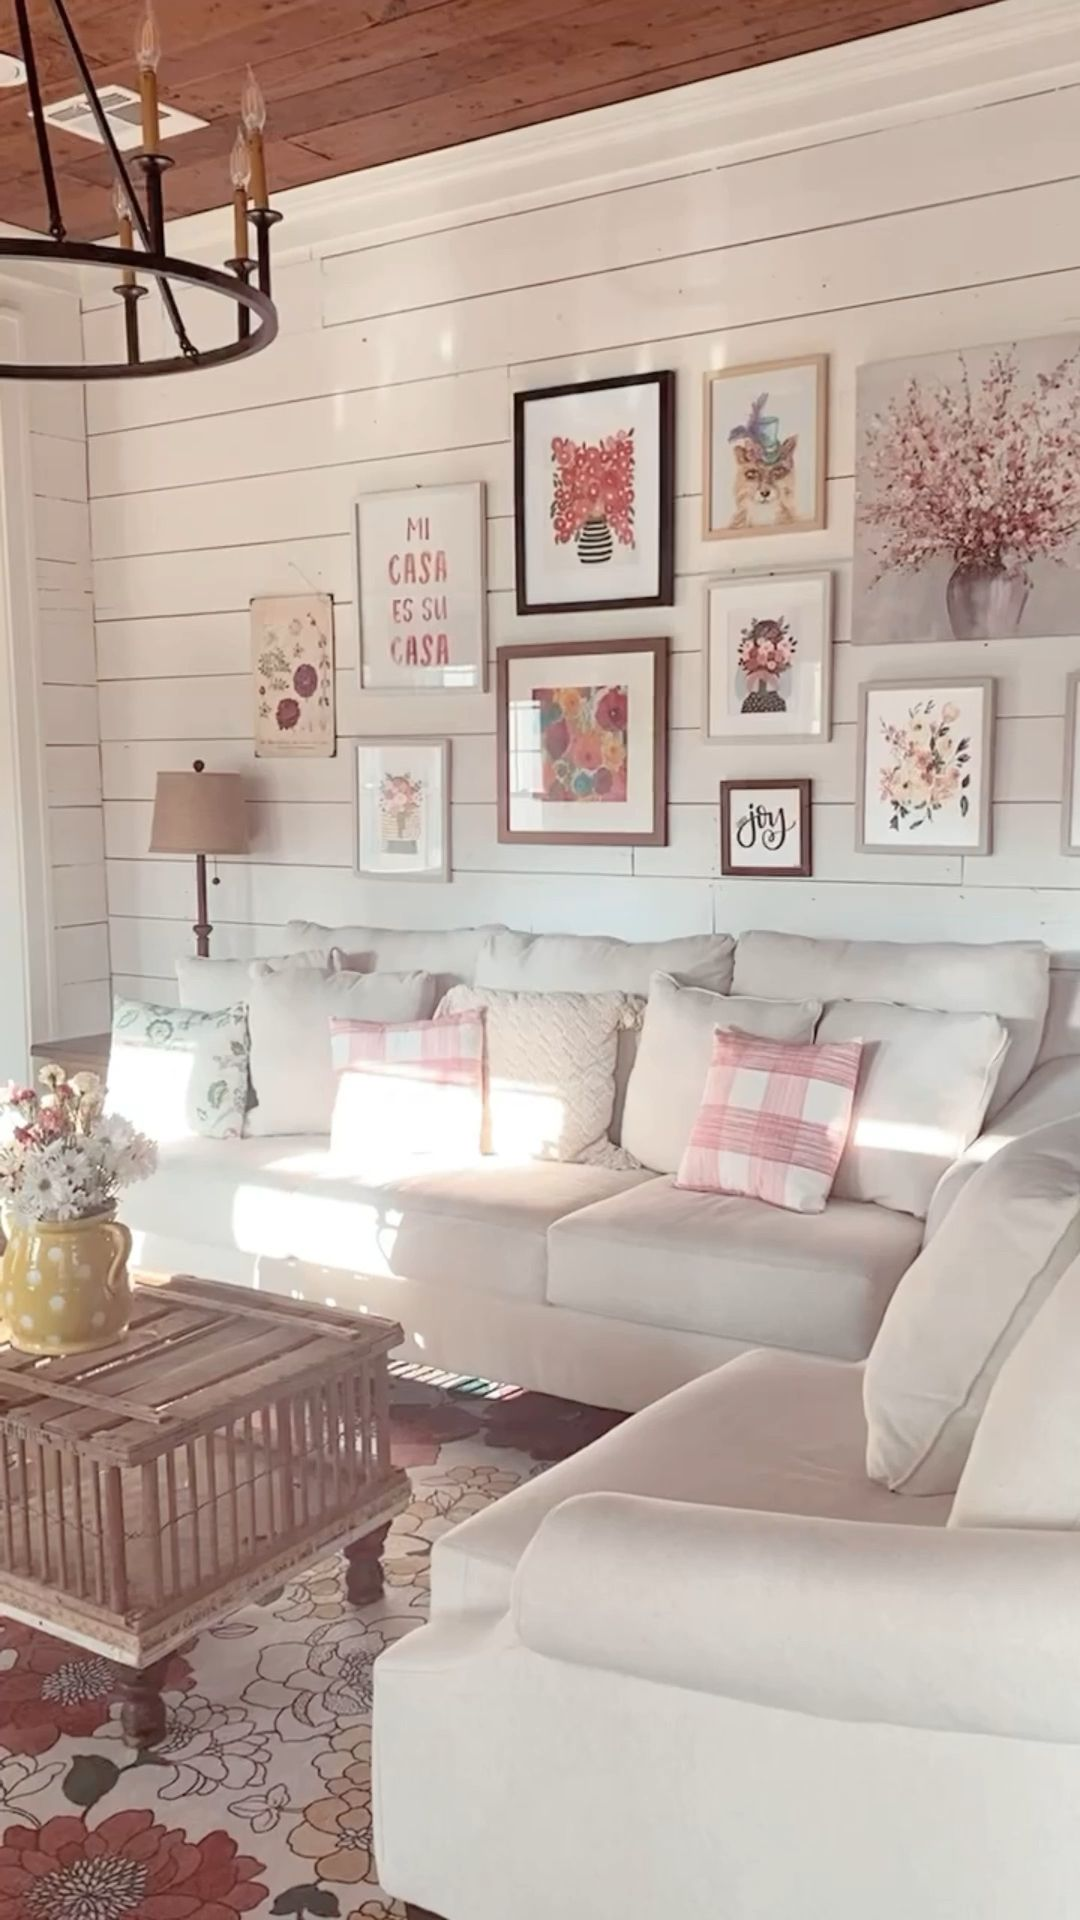 Photo of Here's a sunshine filled, peaceful, cozy cottage home